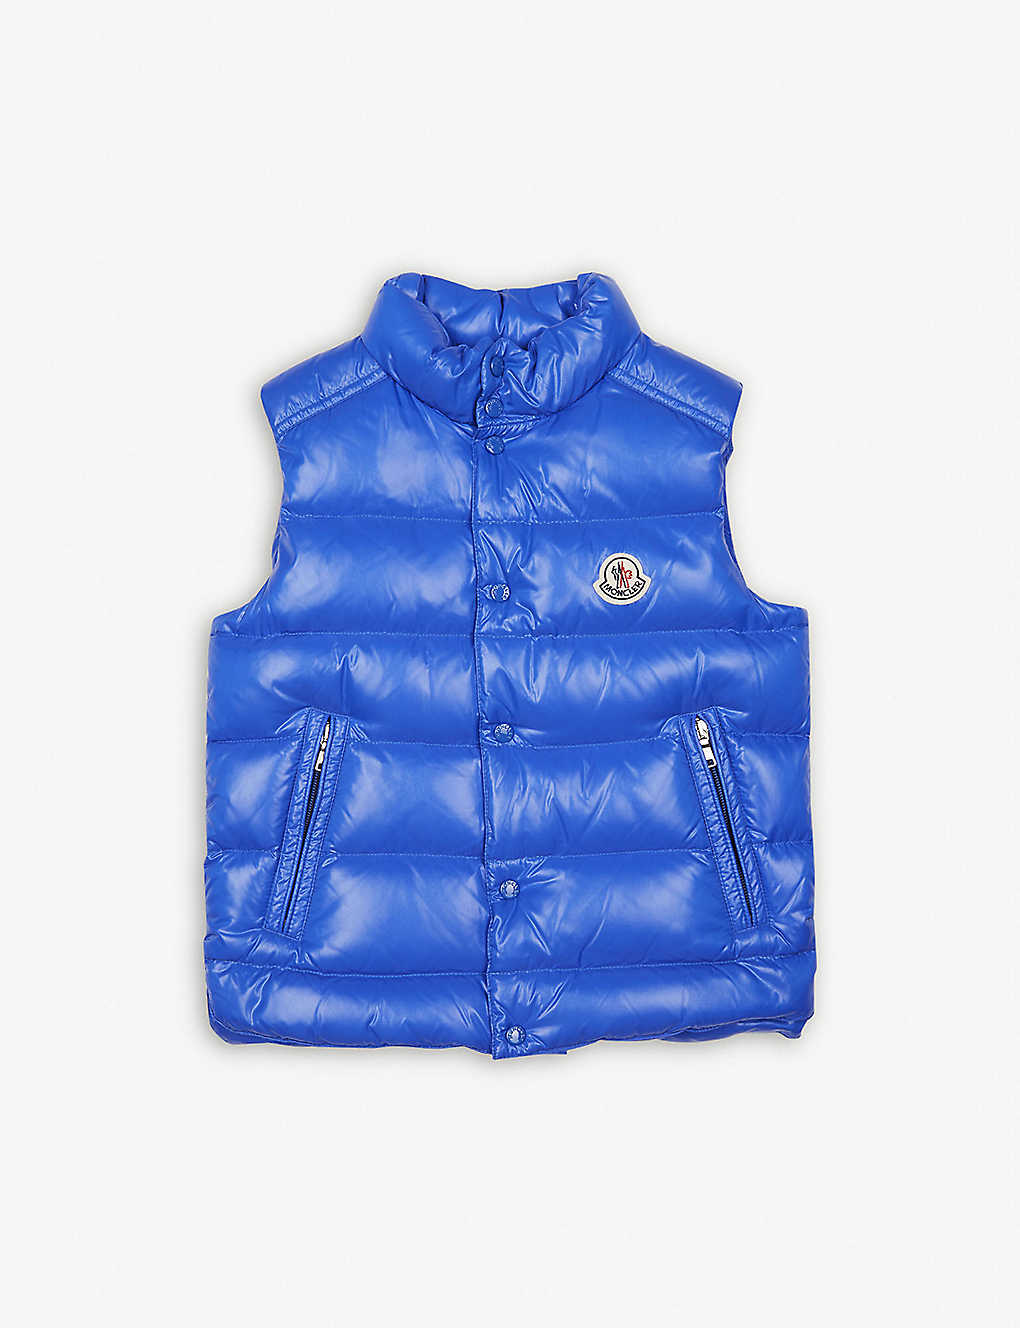 92d94bf5041 MONCLER - Tib padded gilet 4-14 years | Selfridges.com